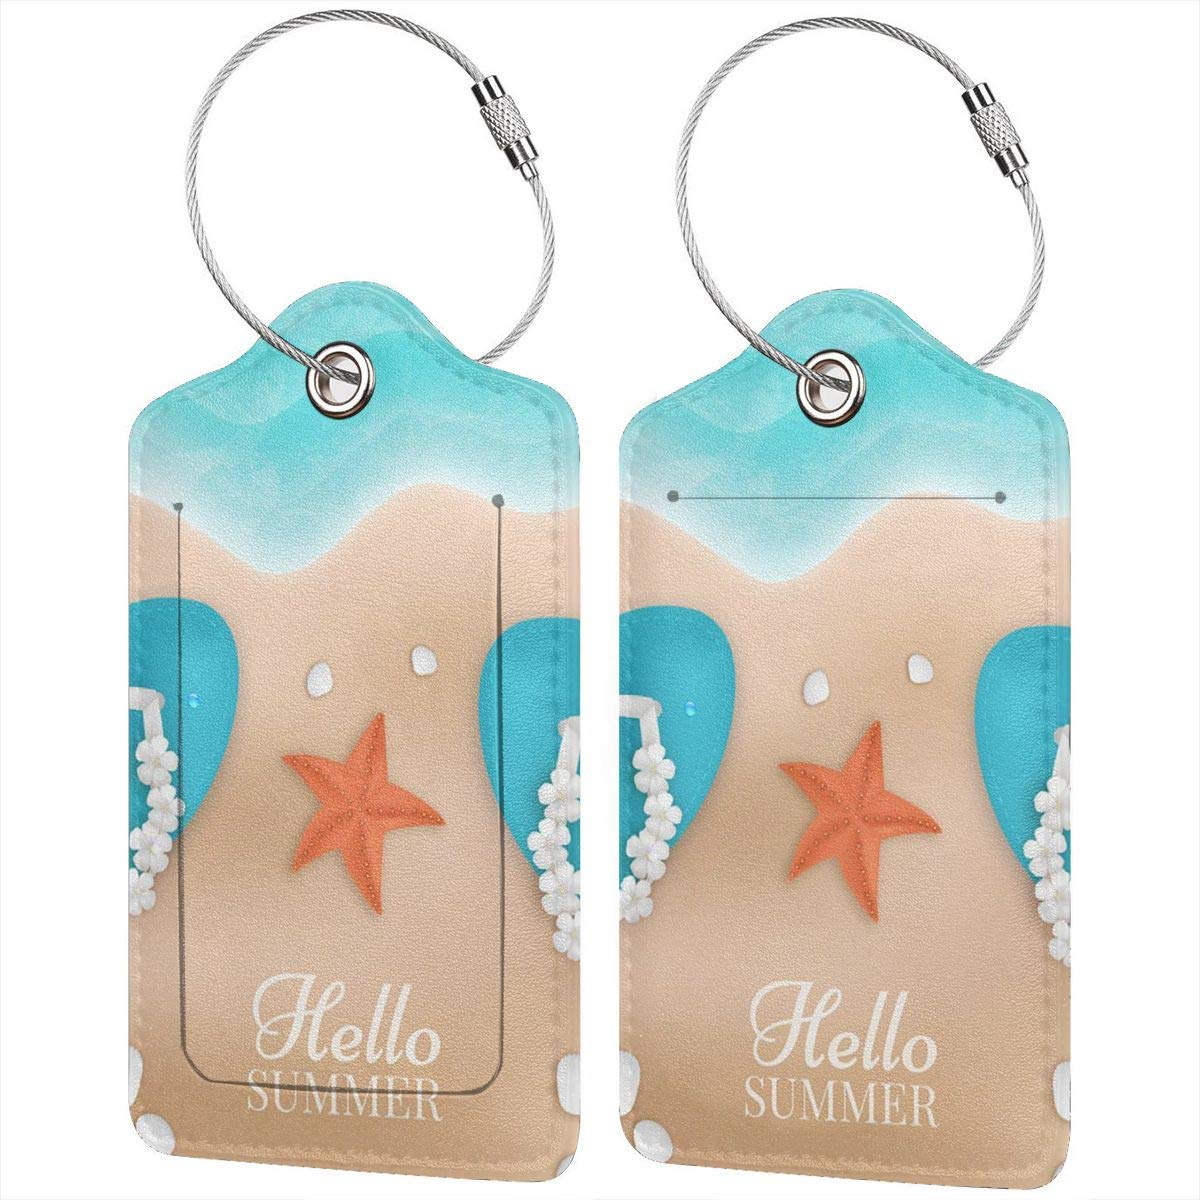 The Summer On The Beach Leather Luggage Tags Personalized Extra Address Cards With Privacy Flap